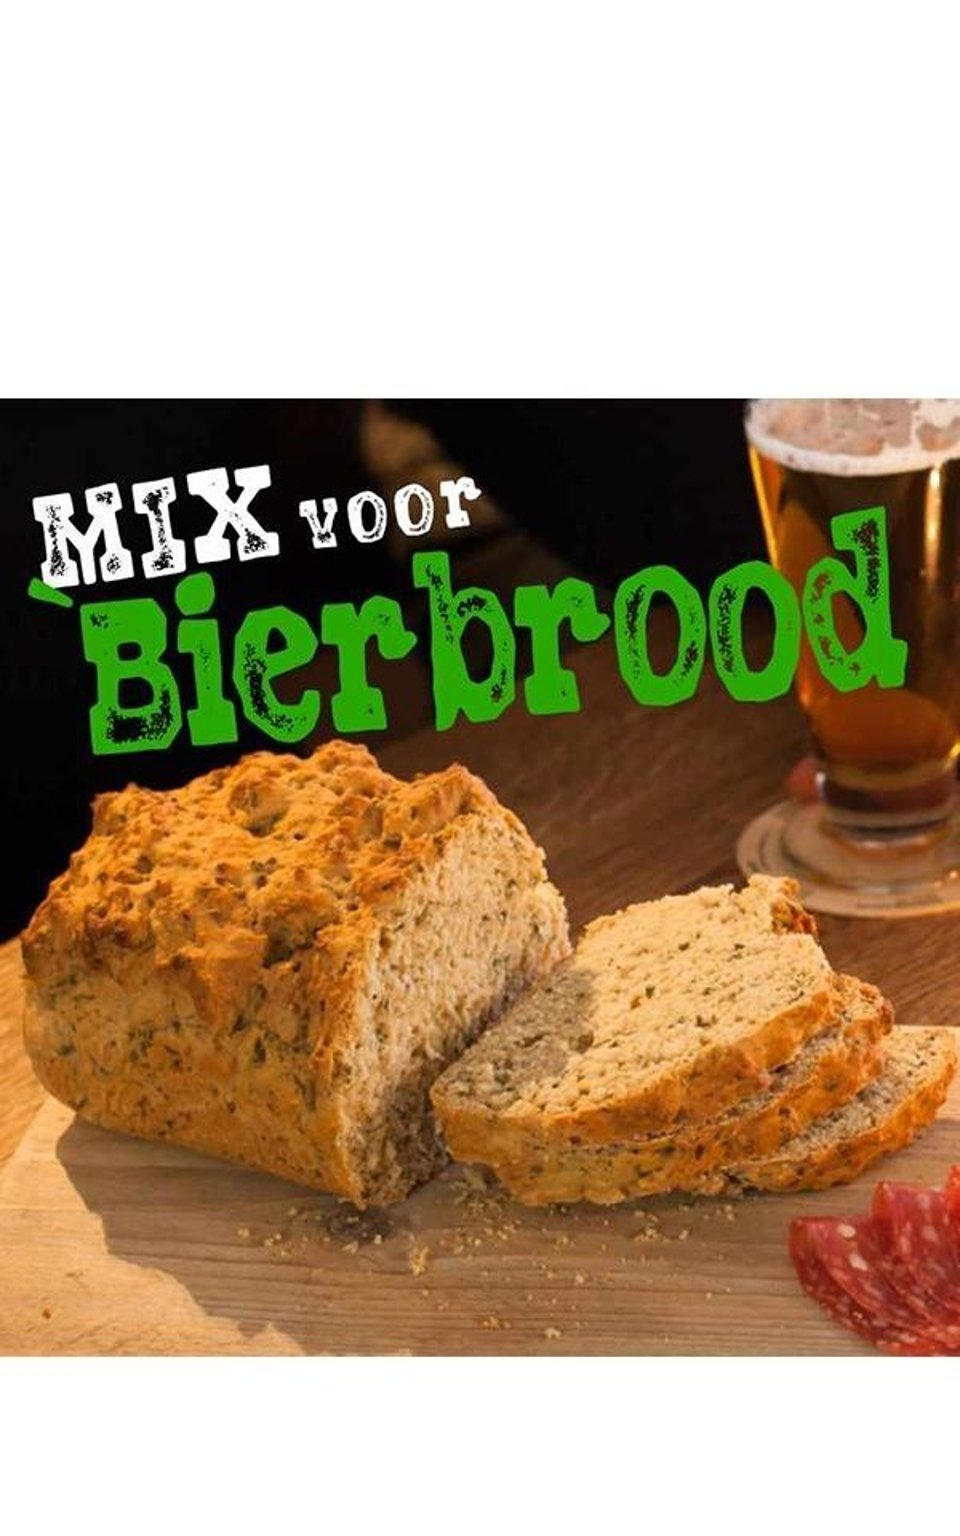 Beer Bread - Letterbox Gift